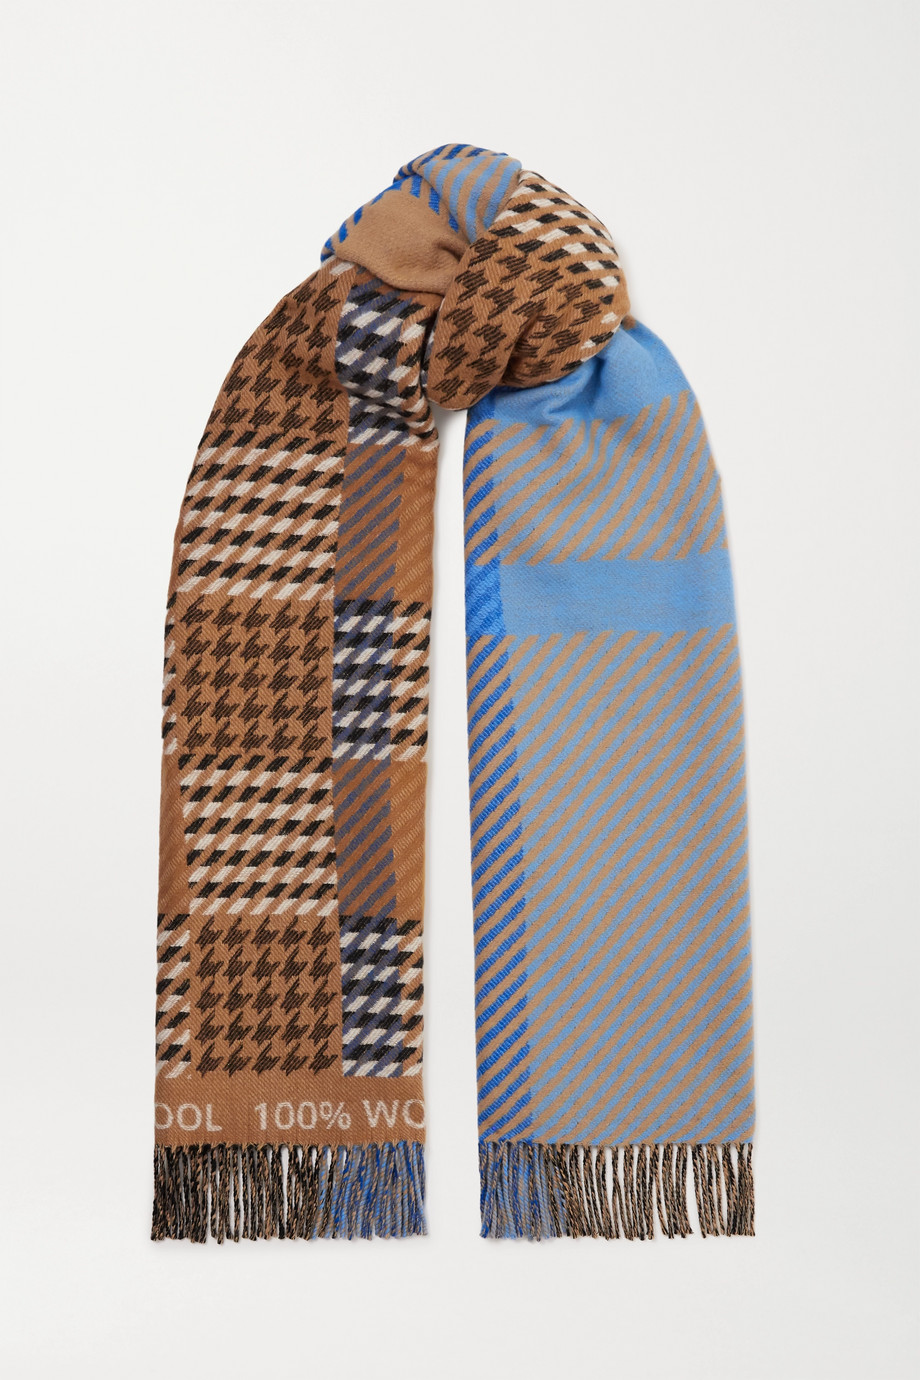 Johnstons of Elgin + Mother of Pearl Derwent wool-jacquard scarf